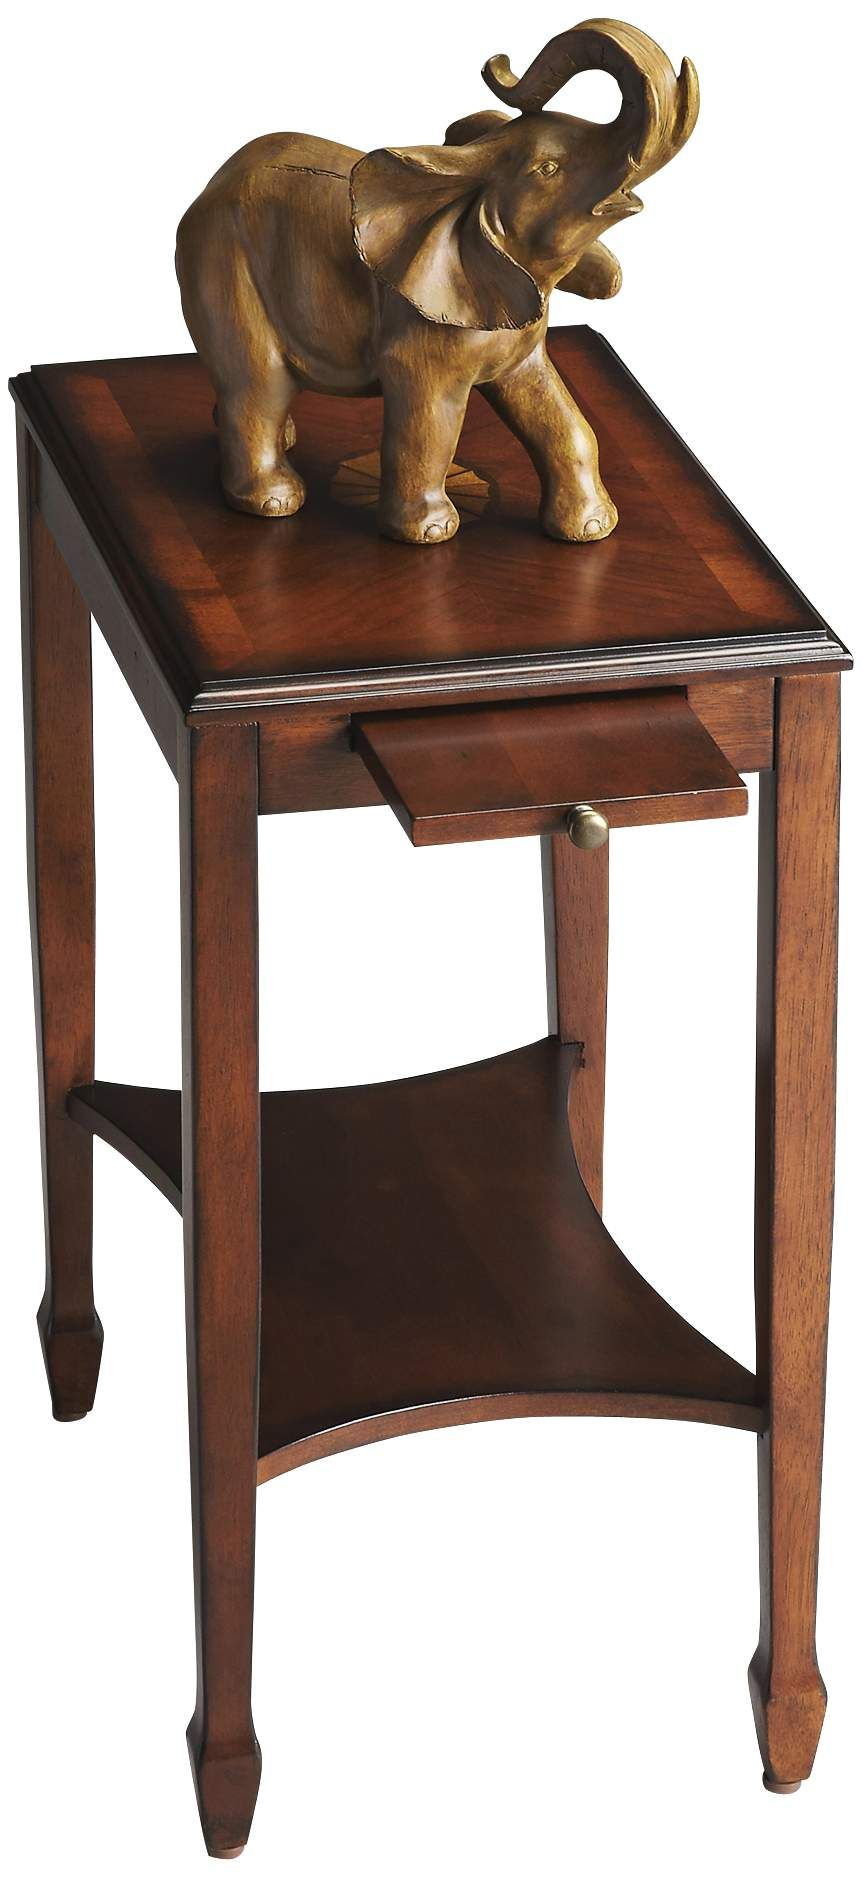 Tables Masterpiece 12 Wide Olive Ash Burl Traditional Side Table Side Table Burled Wood Distressed End Tables